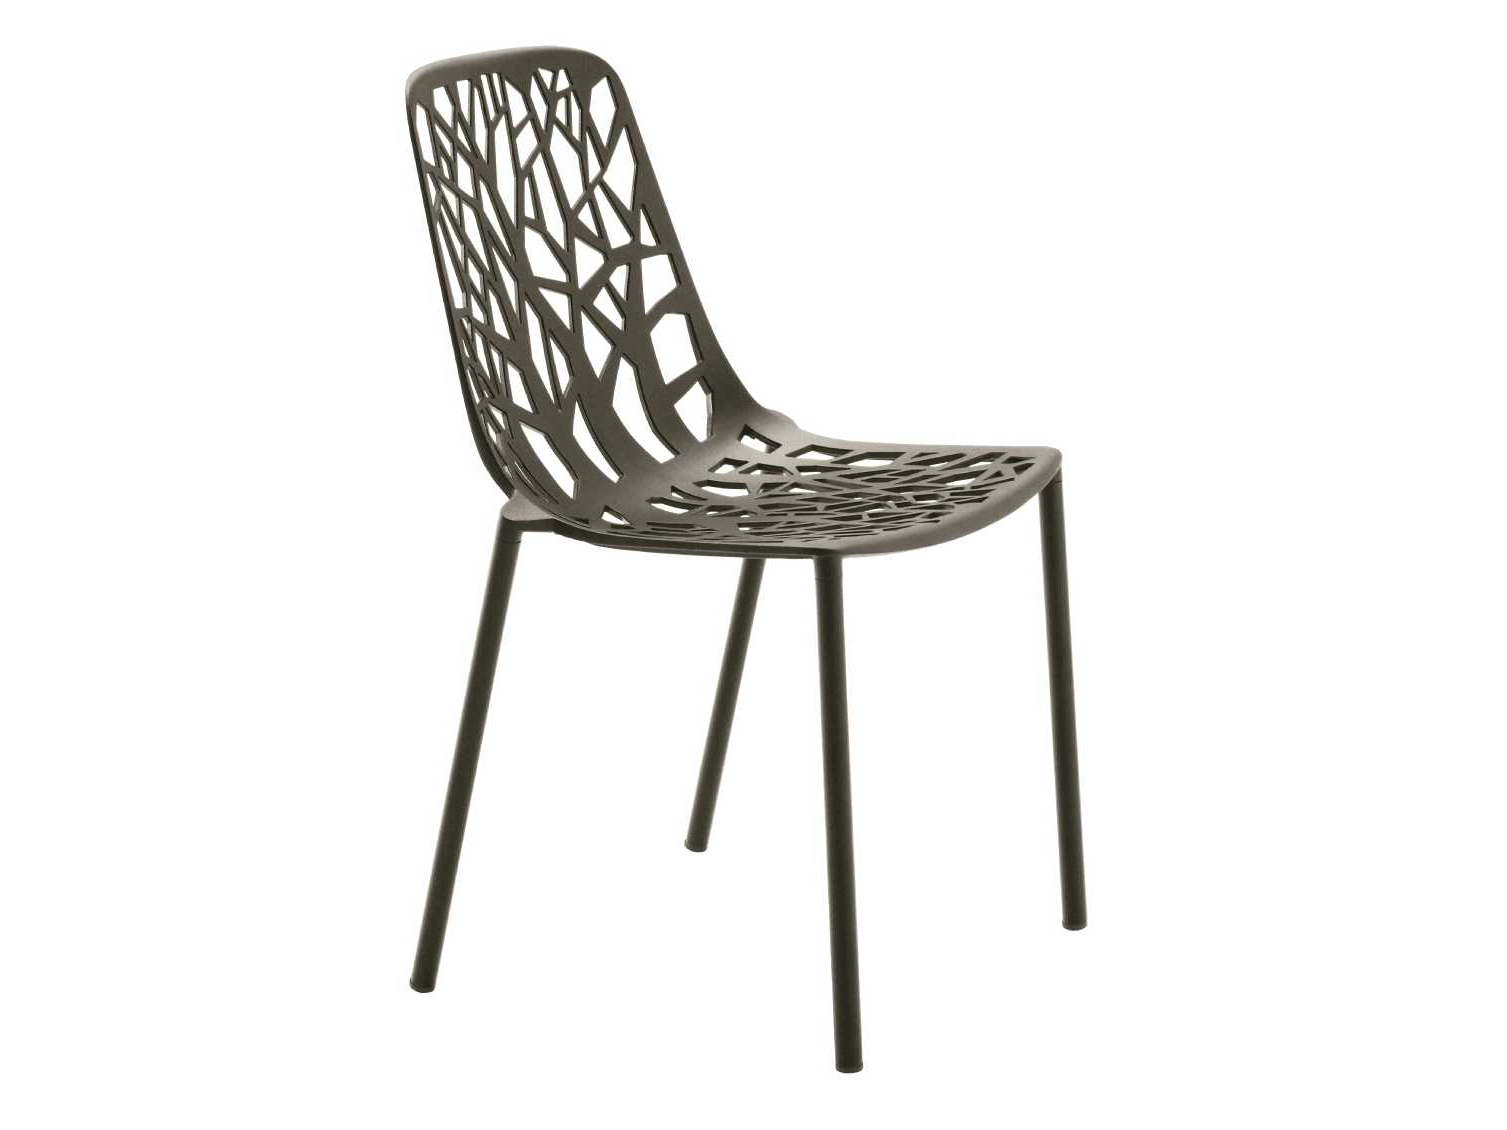 Fast - Producten - Fast-forest-chair-metallicgrey-def